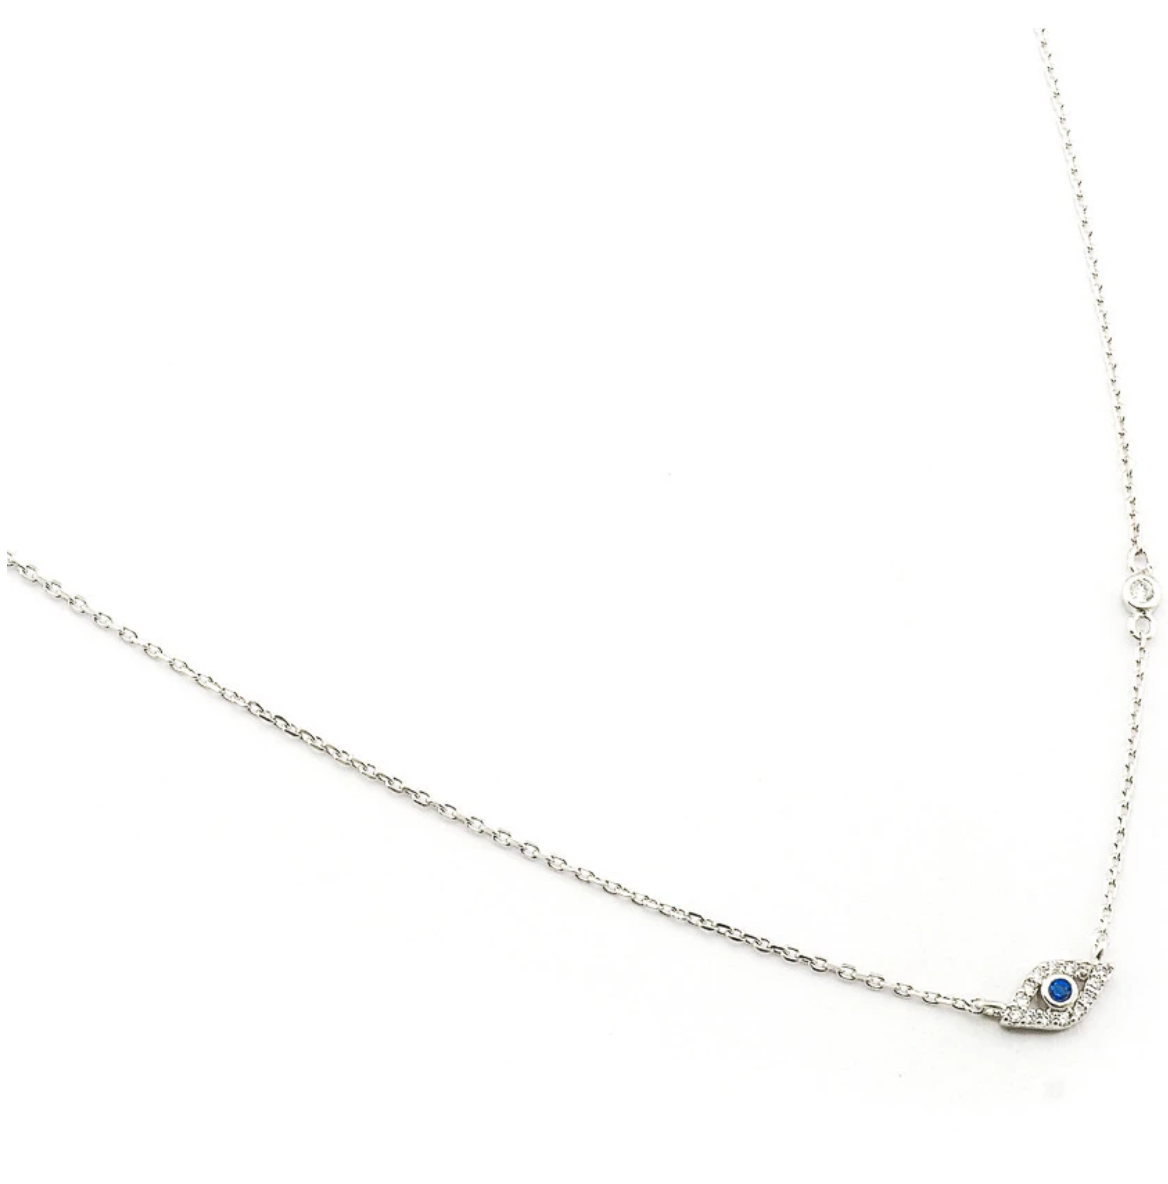 tai Silver simple chain necklace with silver CZ evil eye